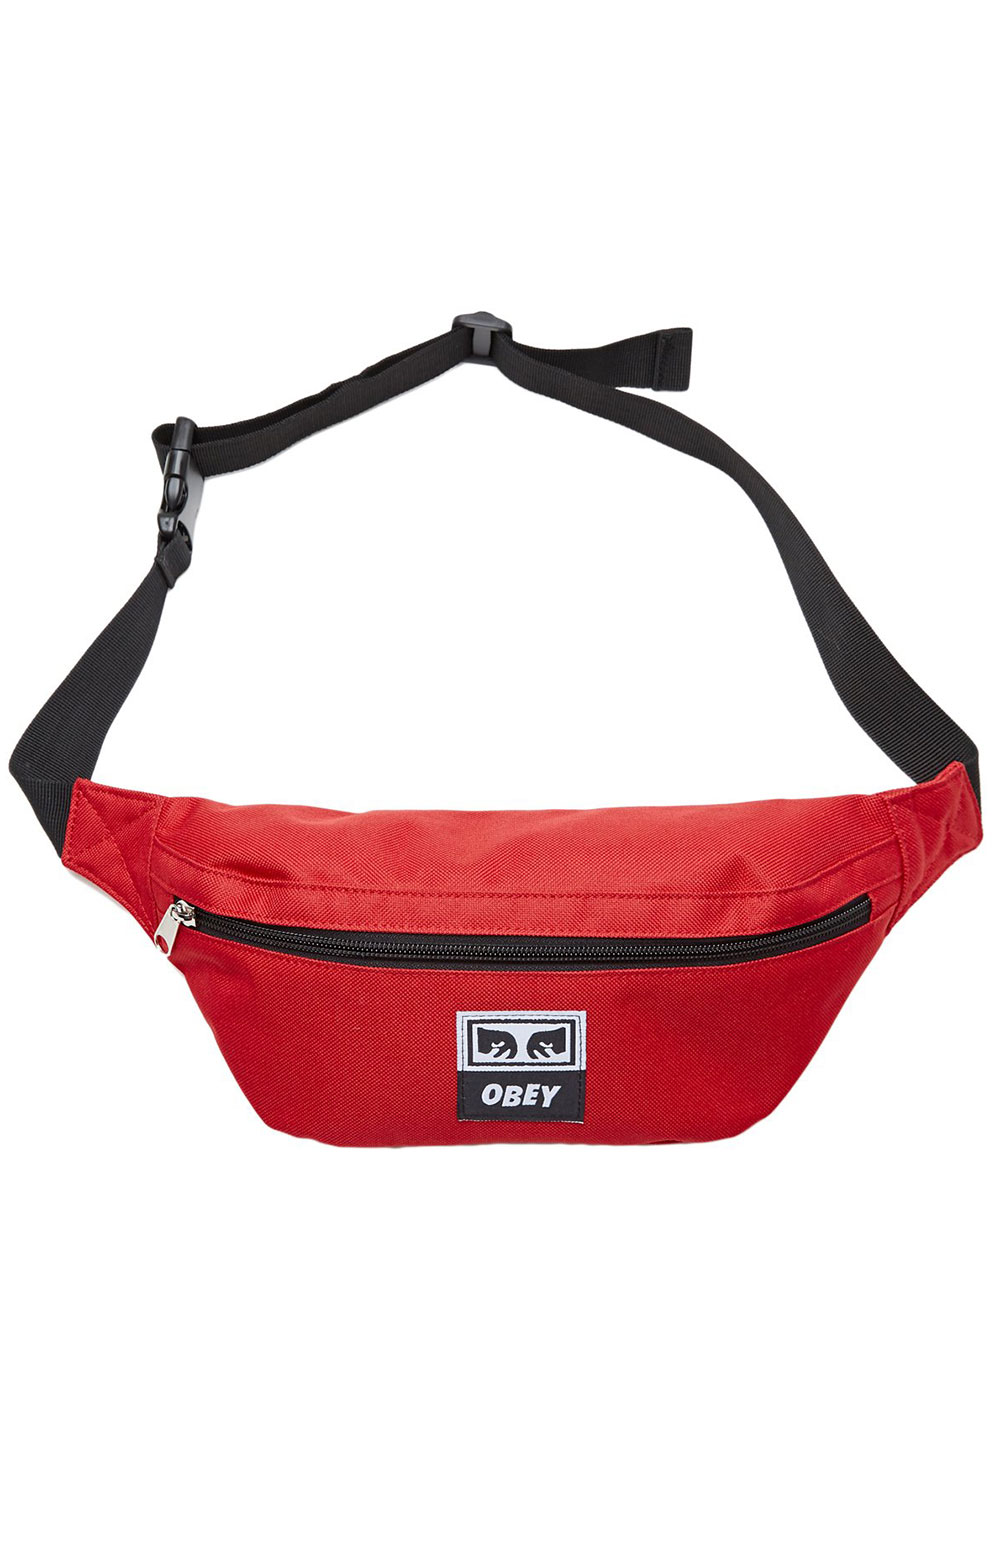 Daily Sling Bag - Red